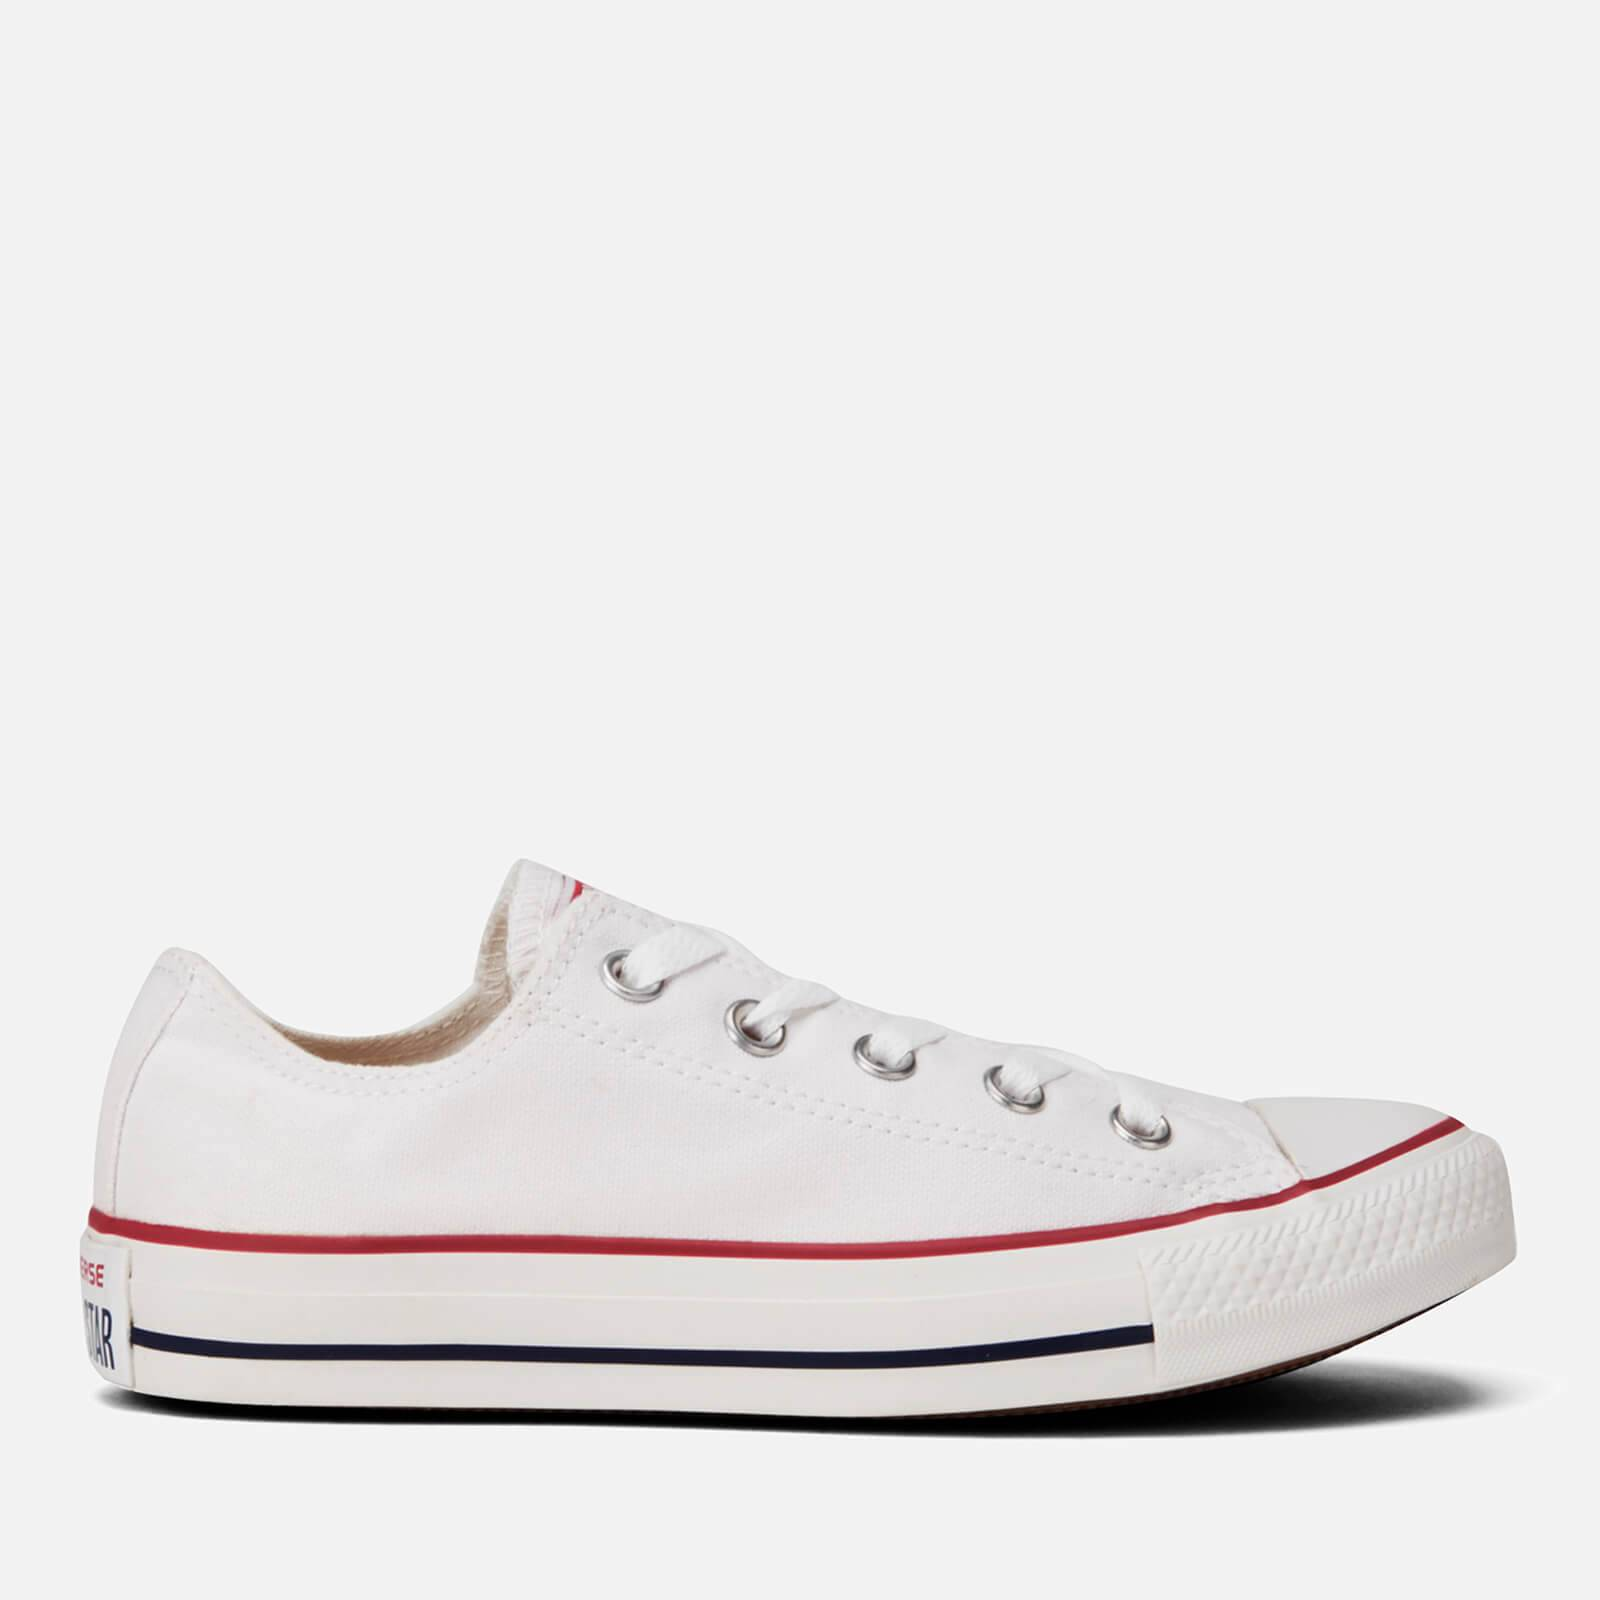 Converse Chuck Taylor All Star Ox Canvas Trainers - Optical White - UK 7